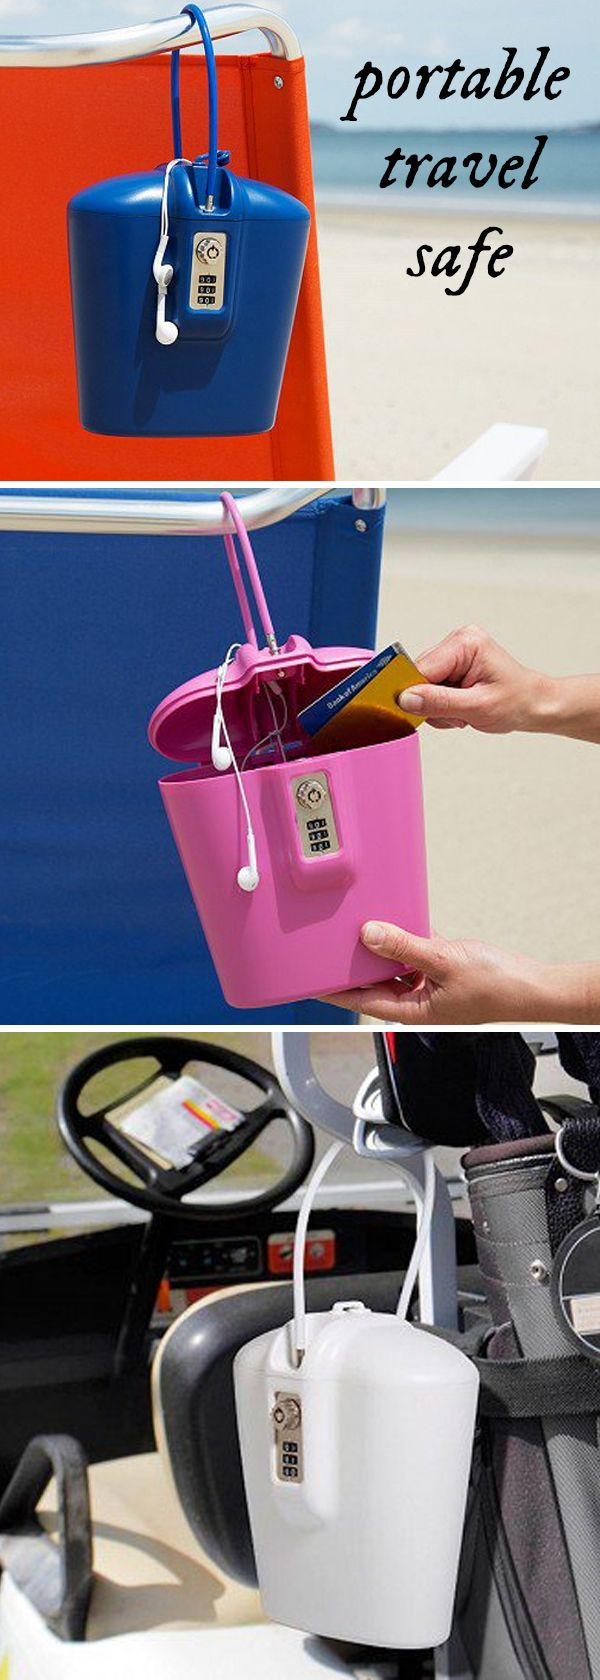 Protect your valuables at the beach, pool, park, gym, or home. Attach this travel safe to a chair, table, pole . . . anything that's tough—or impossible—to run off with. Great for dorm rooms and summer camp!